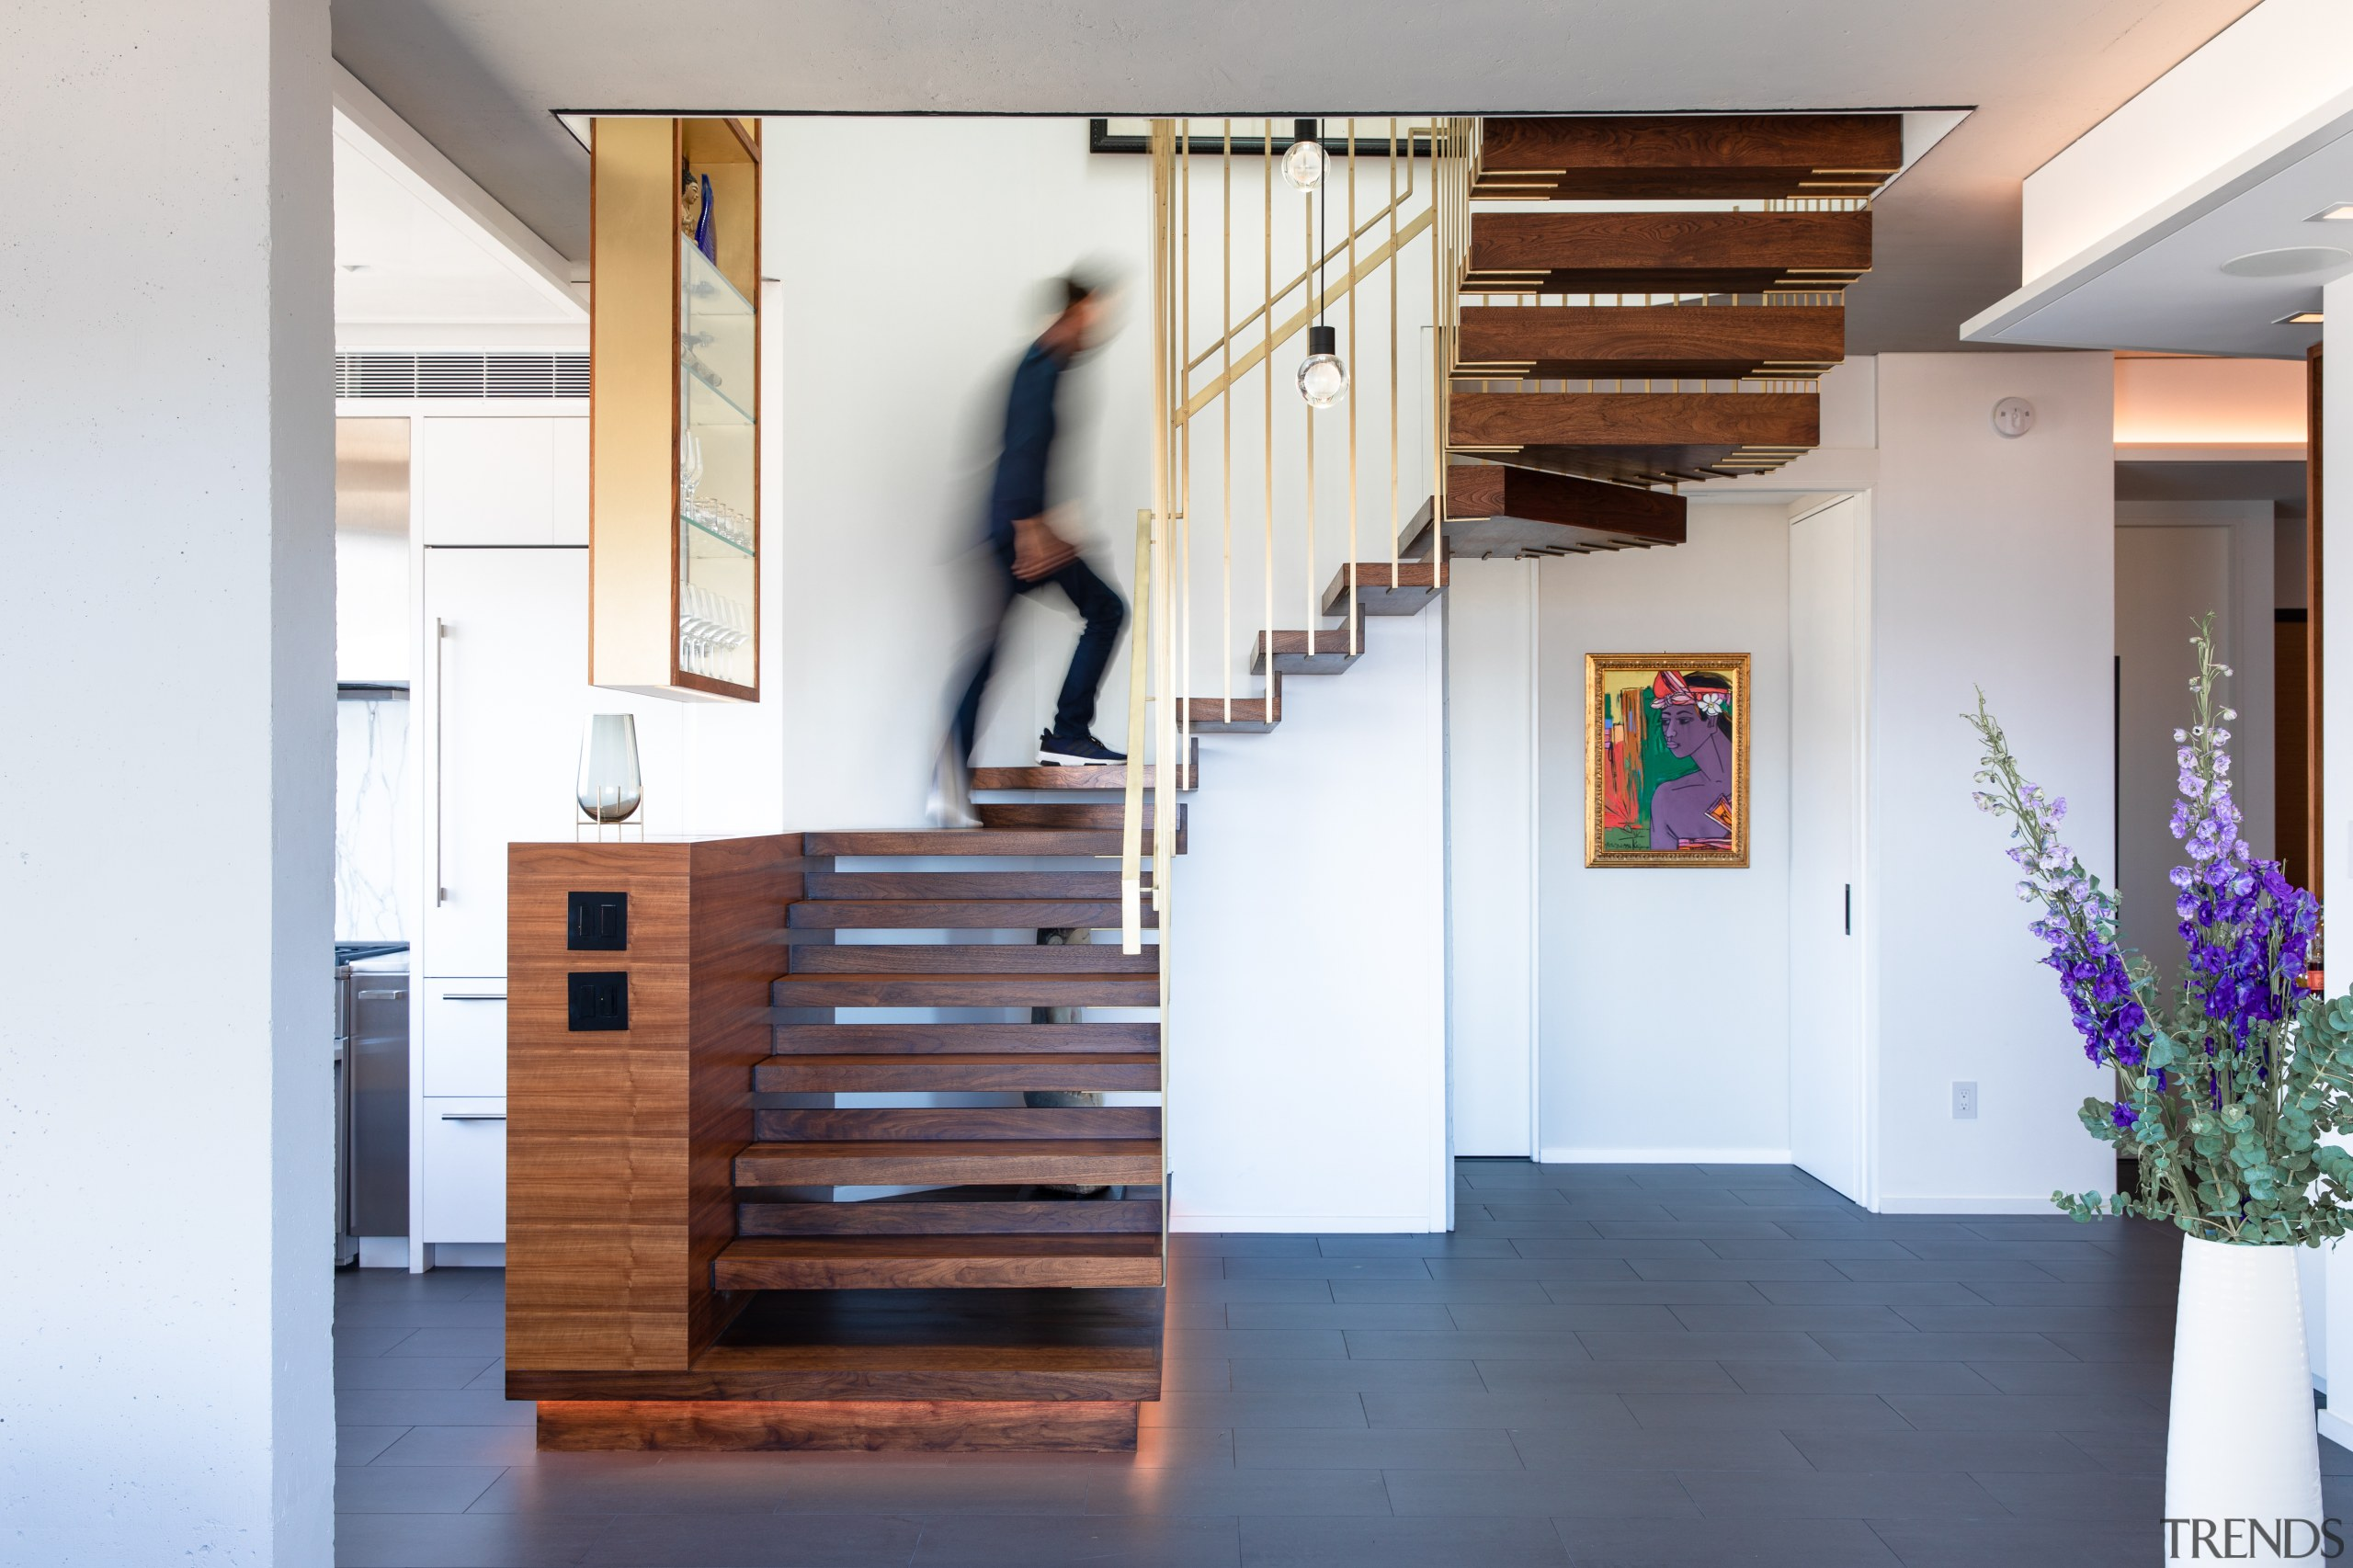 Reconfiguring the stairs was a major contributor to architecture, penthouse, floor, flooring, hall, home, house, interior design, stairs, Andrew Wilkinson